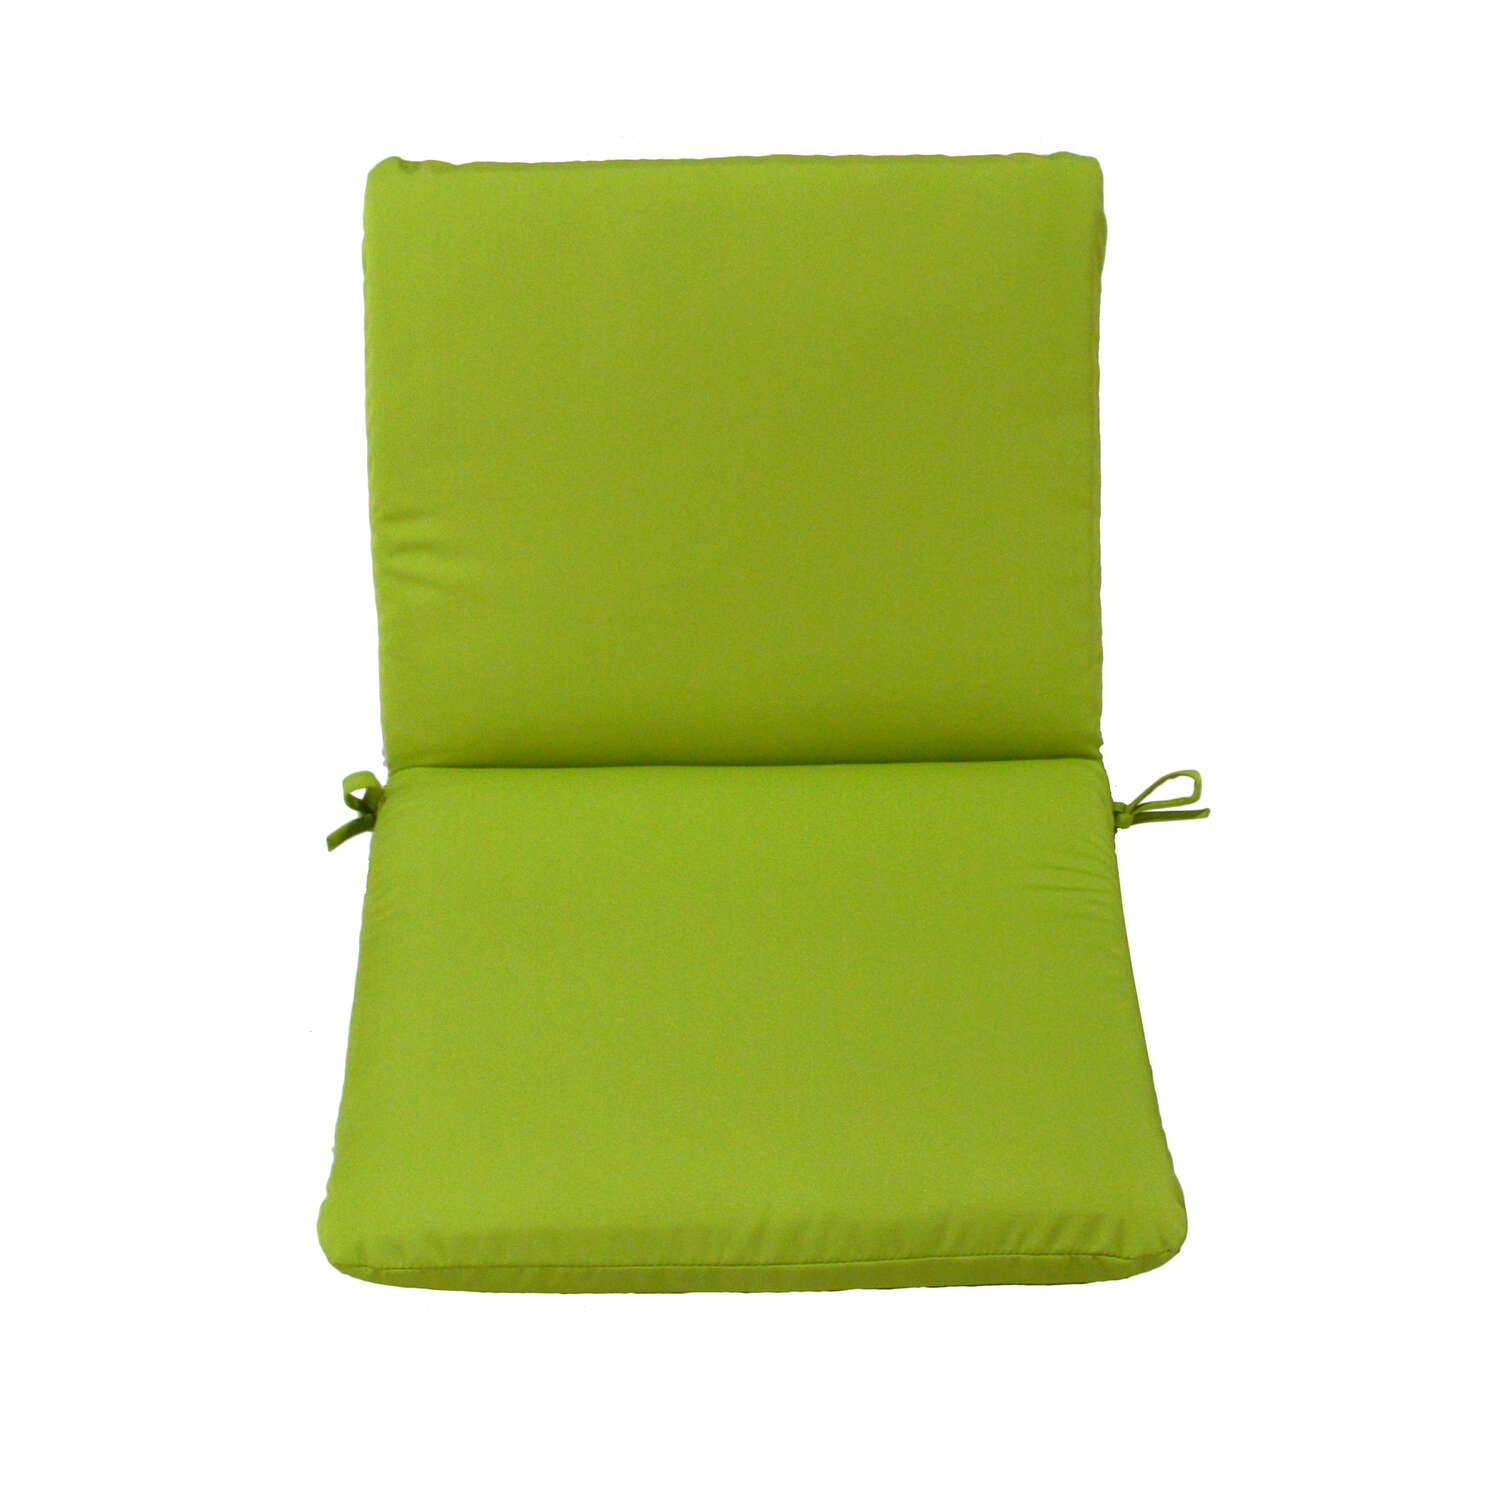 Casual Cushion  Gray/Lime  Seating Cushion  1.5 in. Polyester  36 in. 19 in.